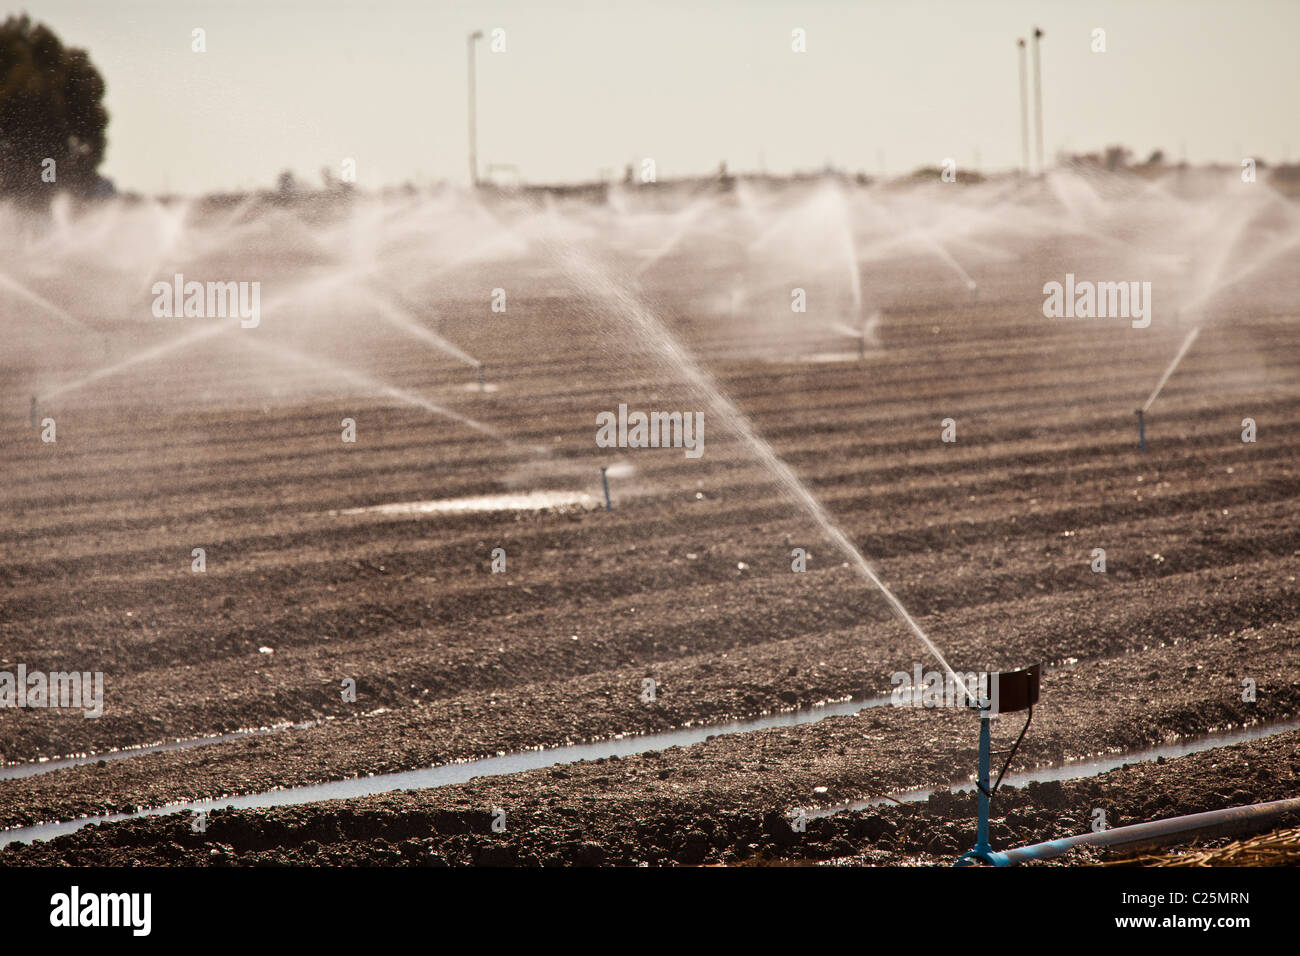 Freshly planted field being irrigated in the Imperial Valley Niland, CA. - Stock Image